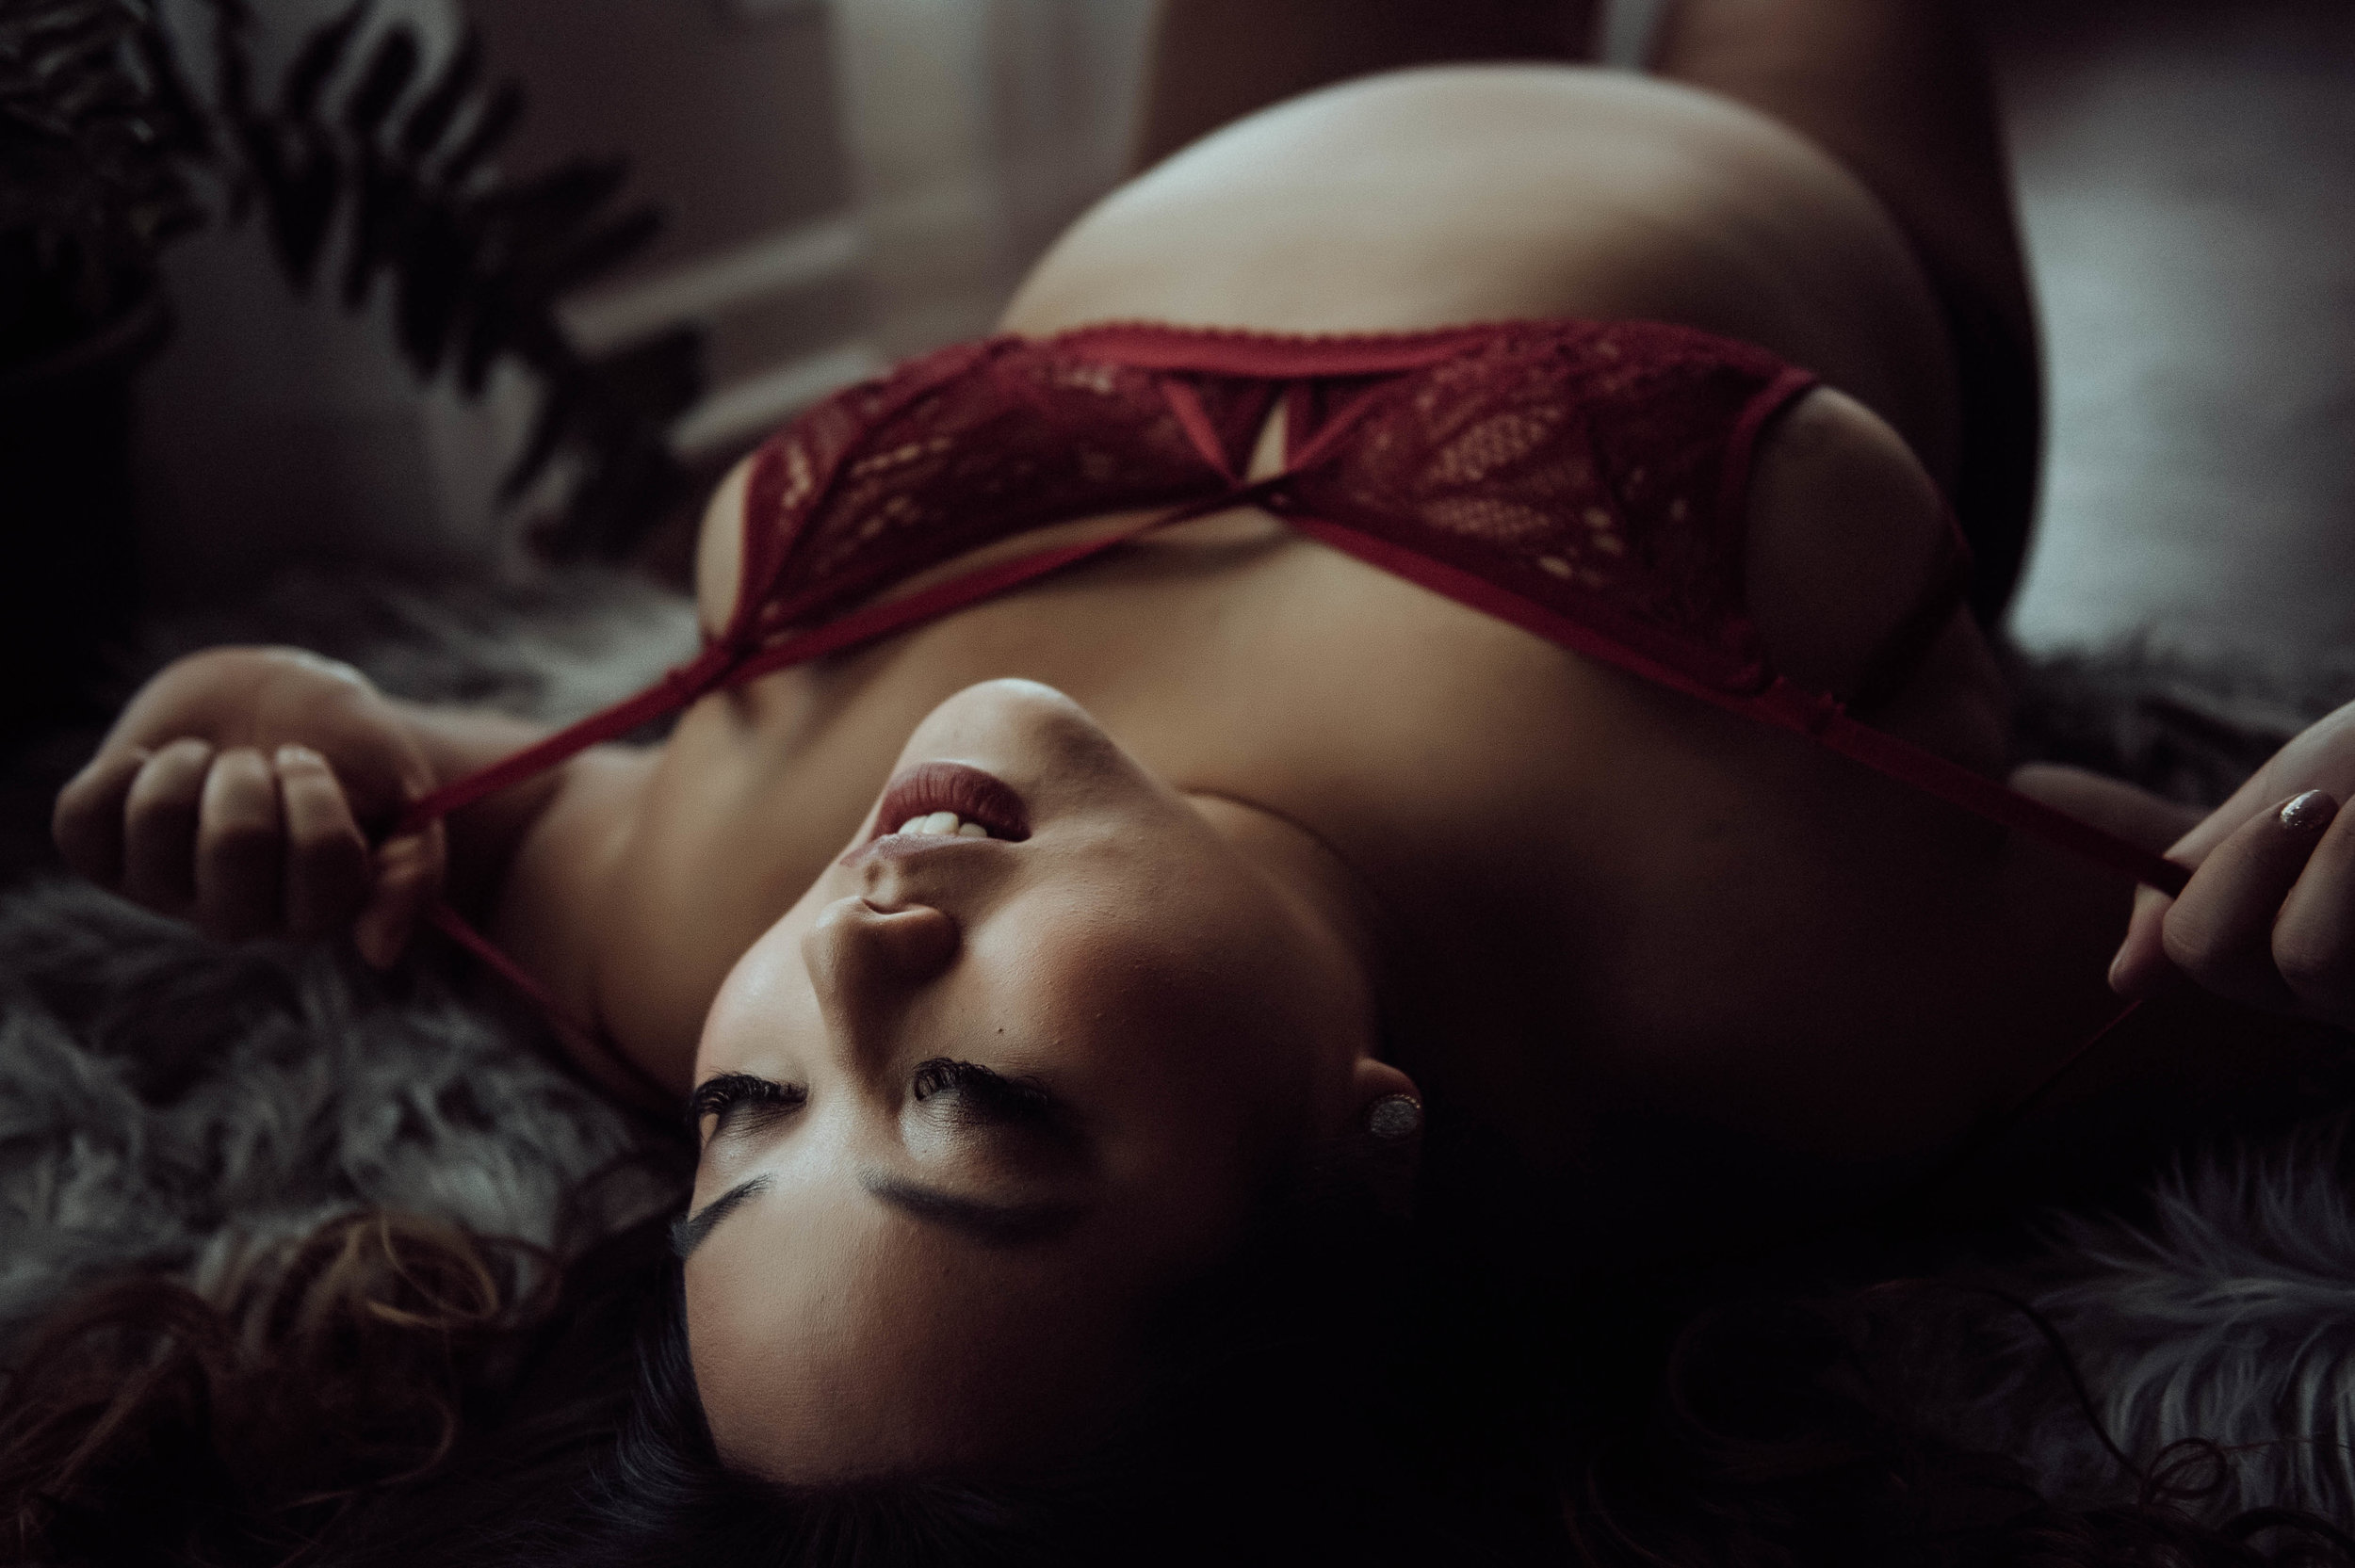 Plus size asian woman in red bra fur rug boudoir photography new york studio